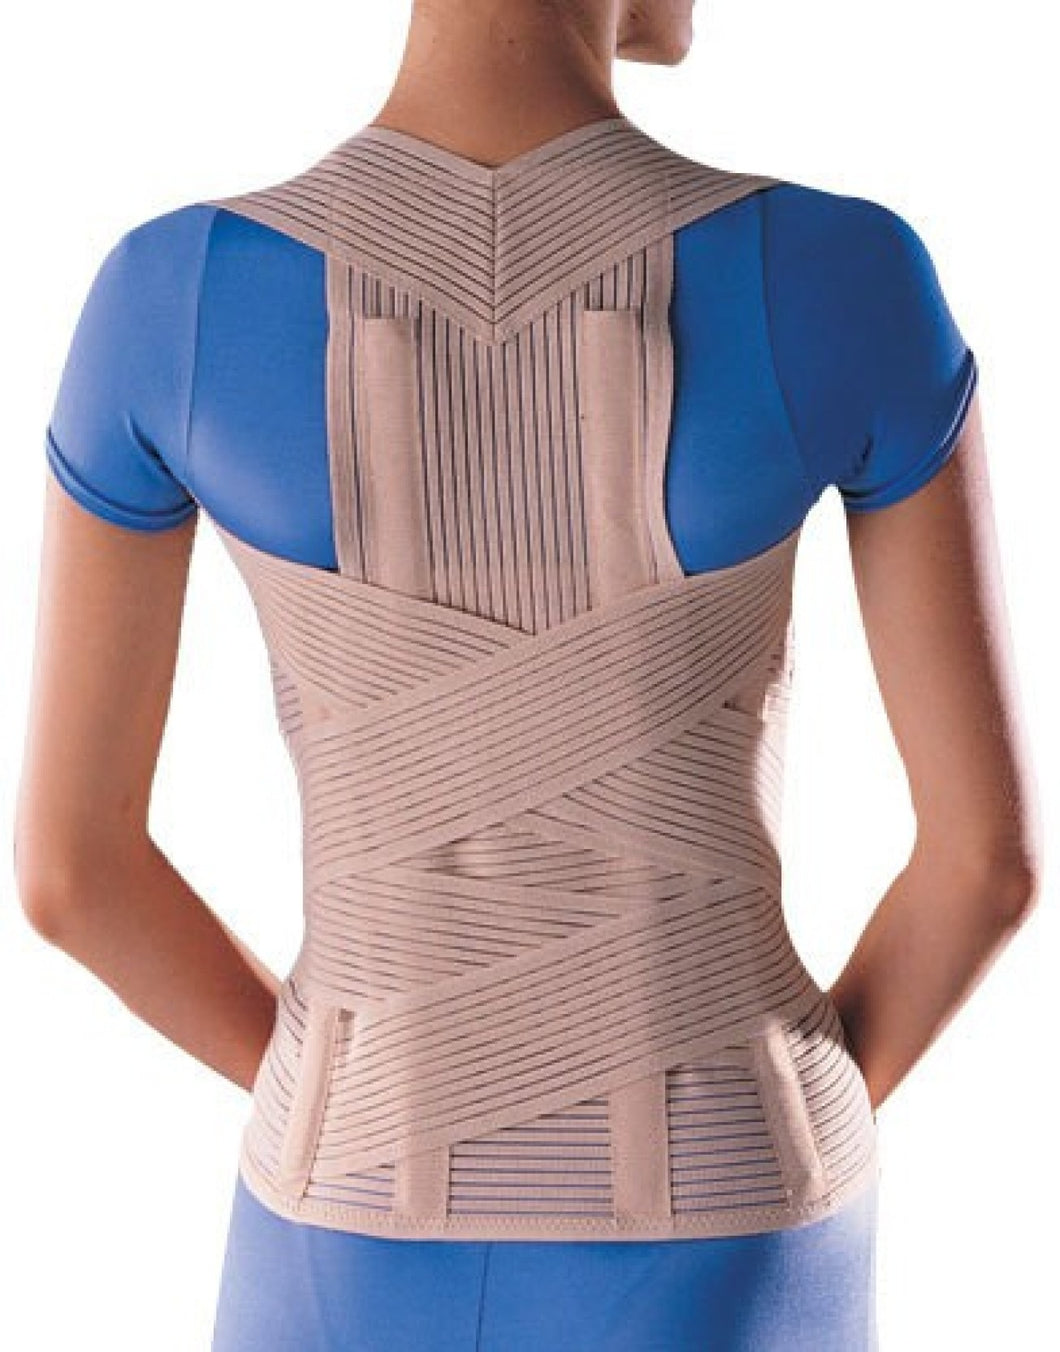 OPPO Posture and Spinal Support Brace